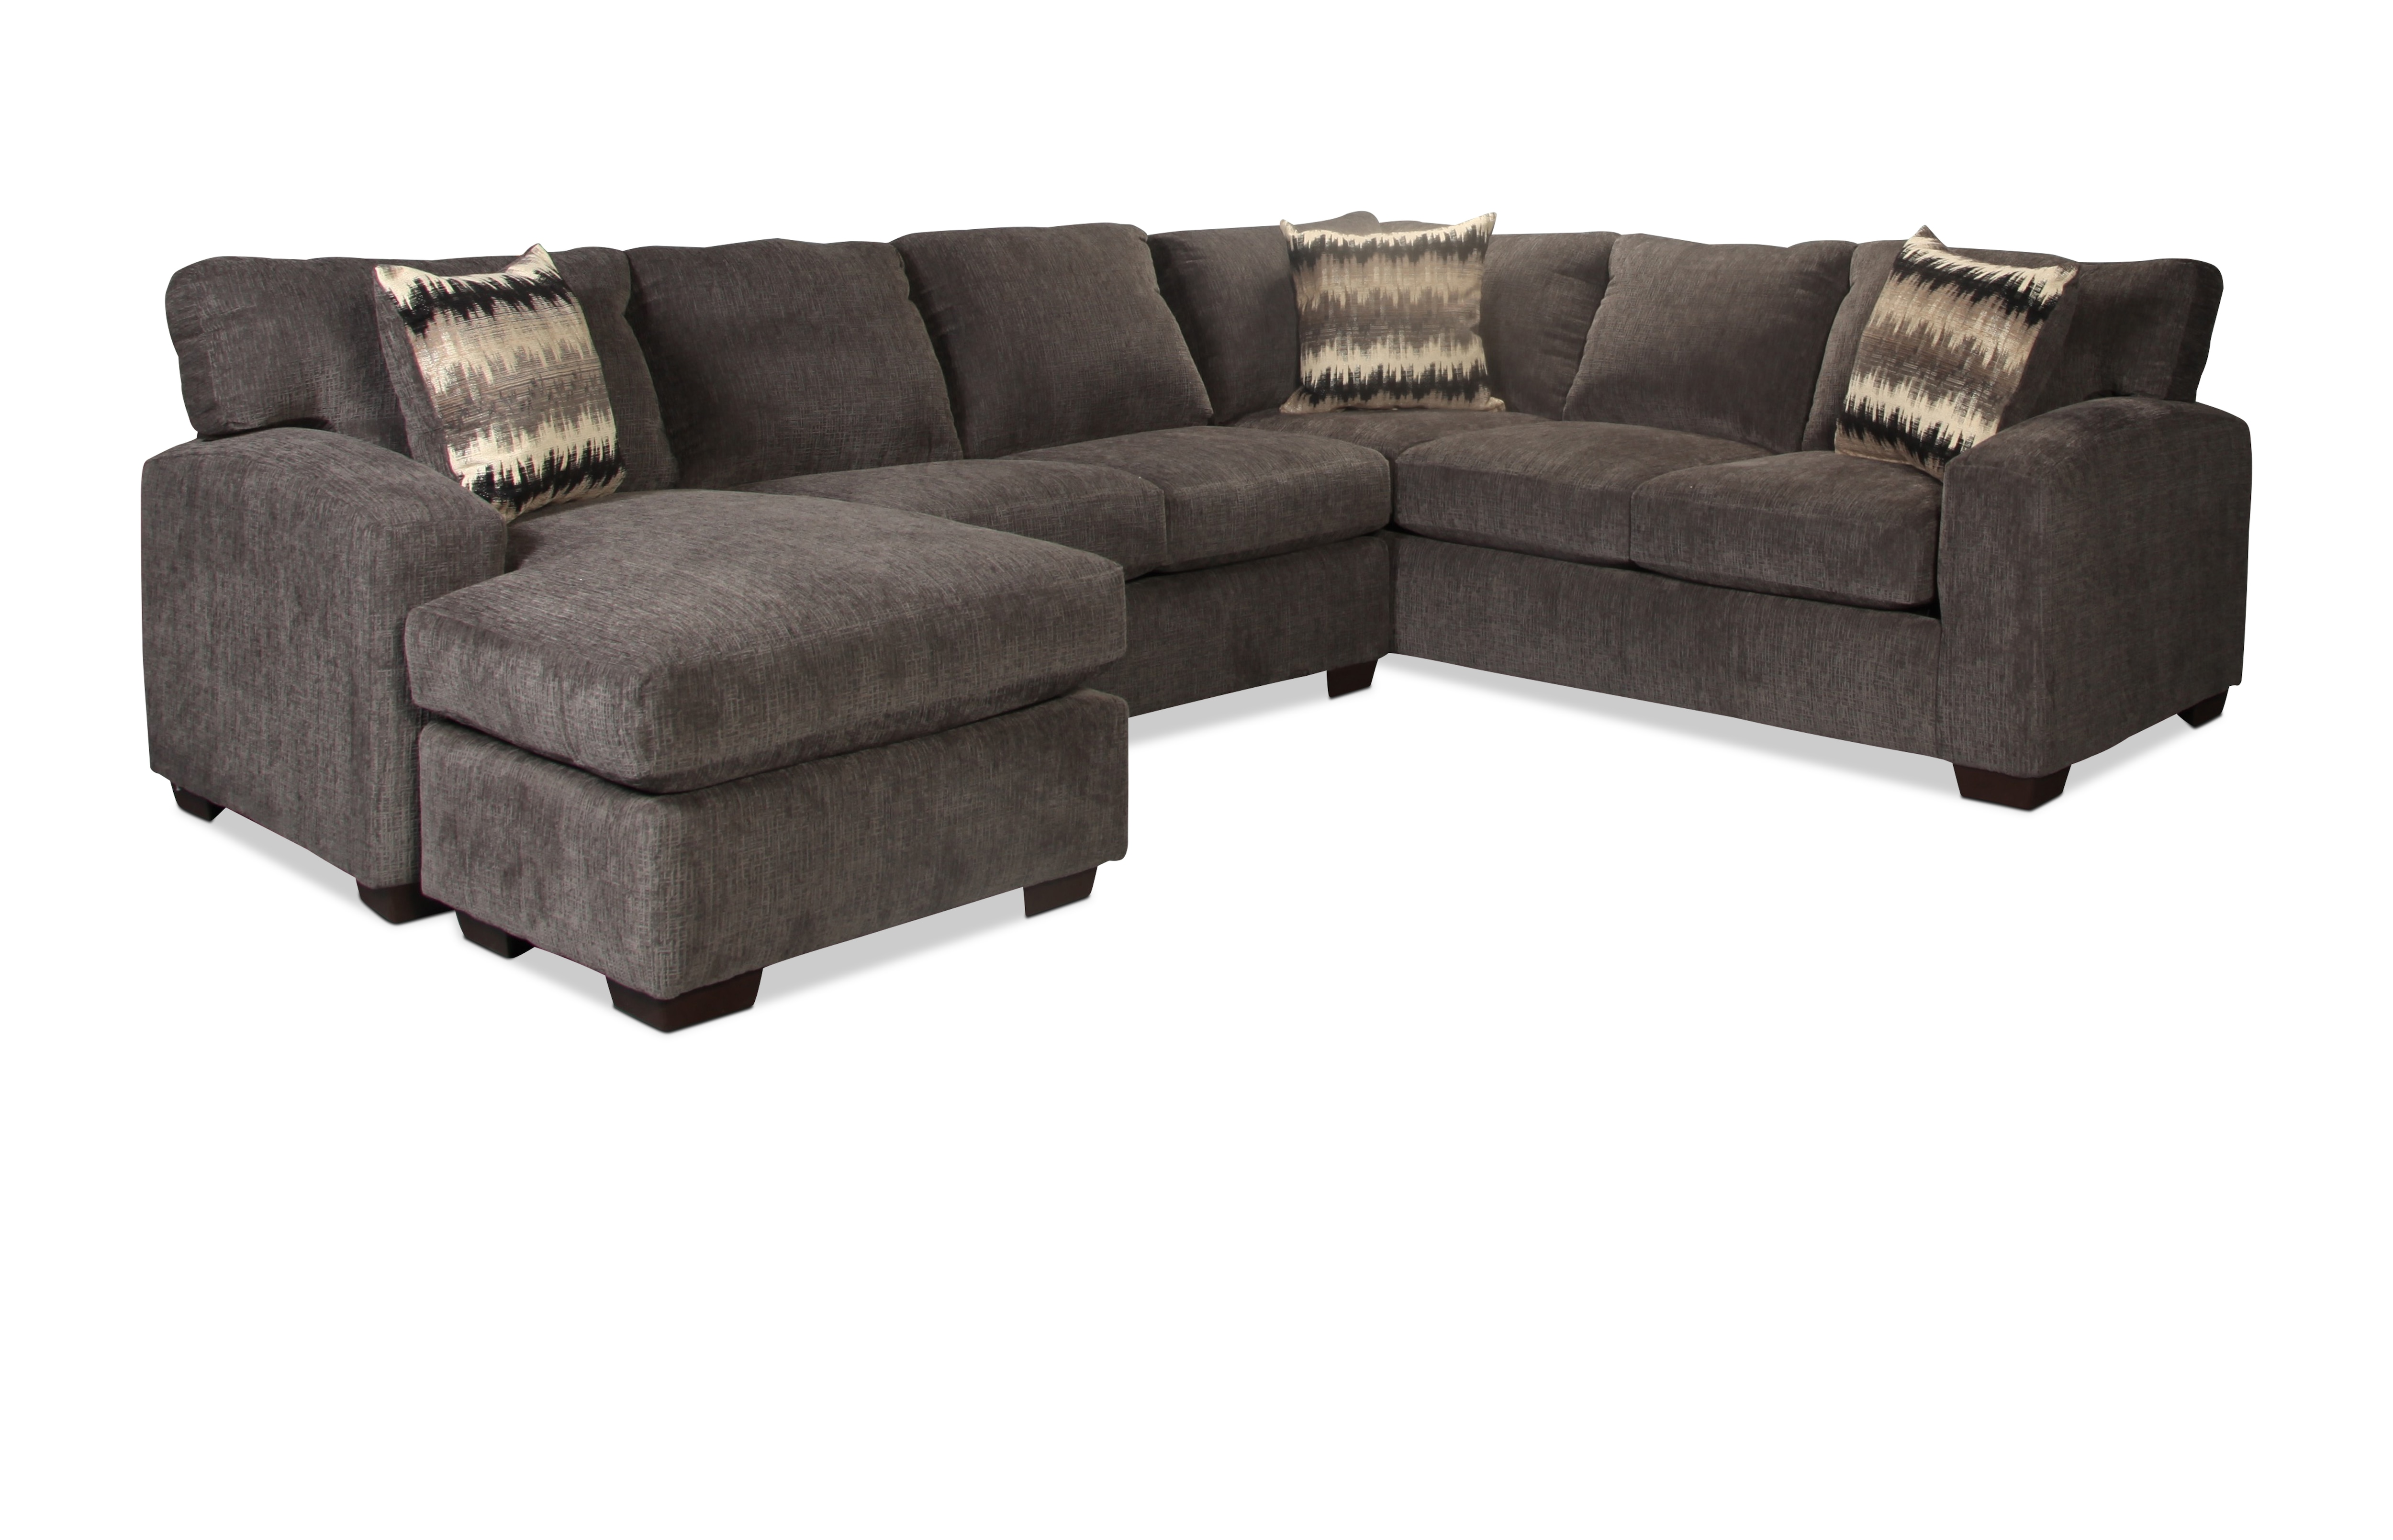 Fenella 2-Piece Left-Facing Sectional - Smoke